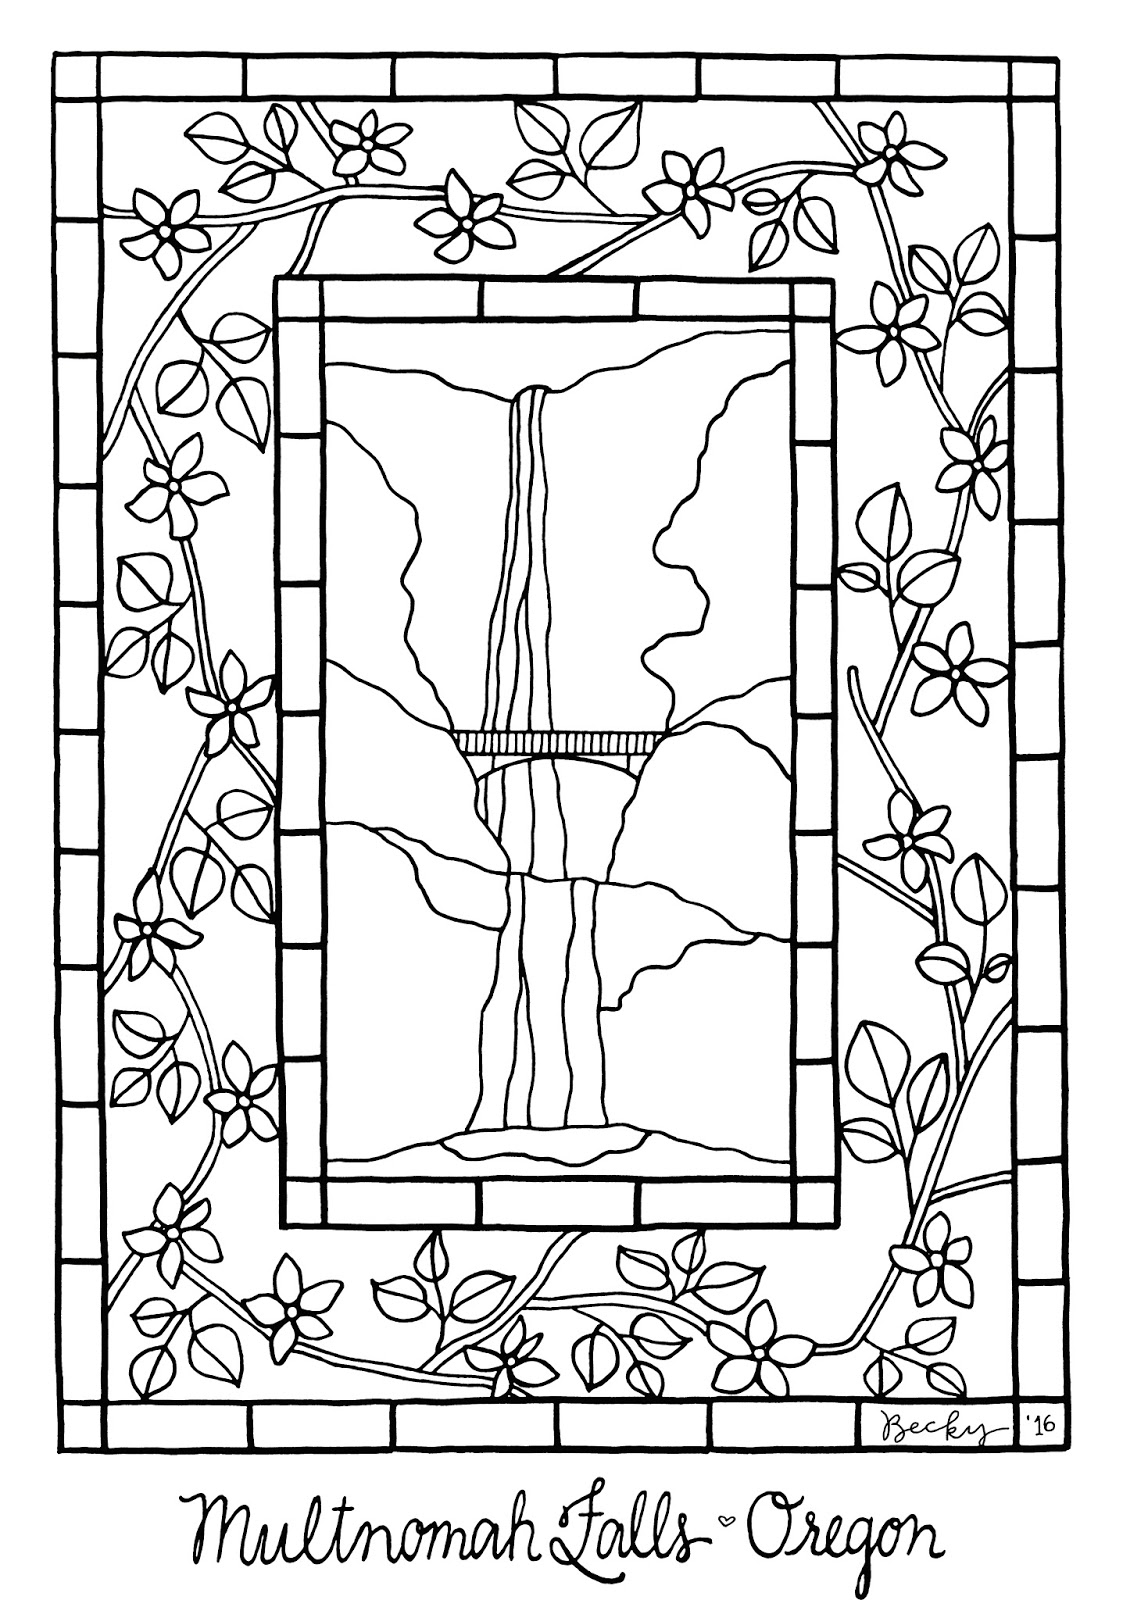 Hoffee And A Nuffin Free Coloring Page Multnomah Falls Oregon